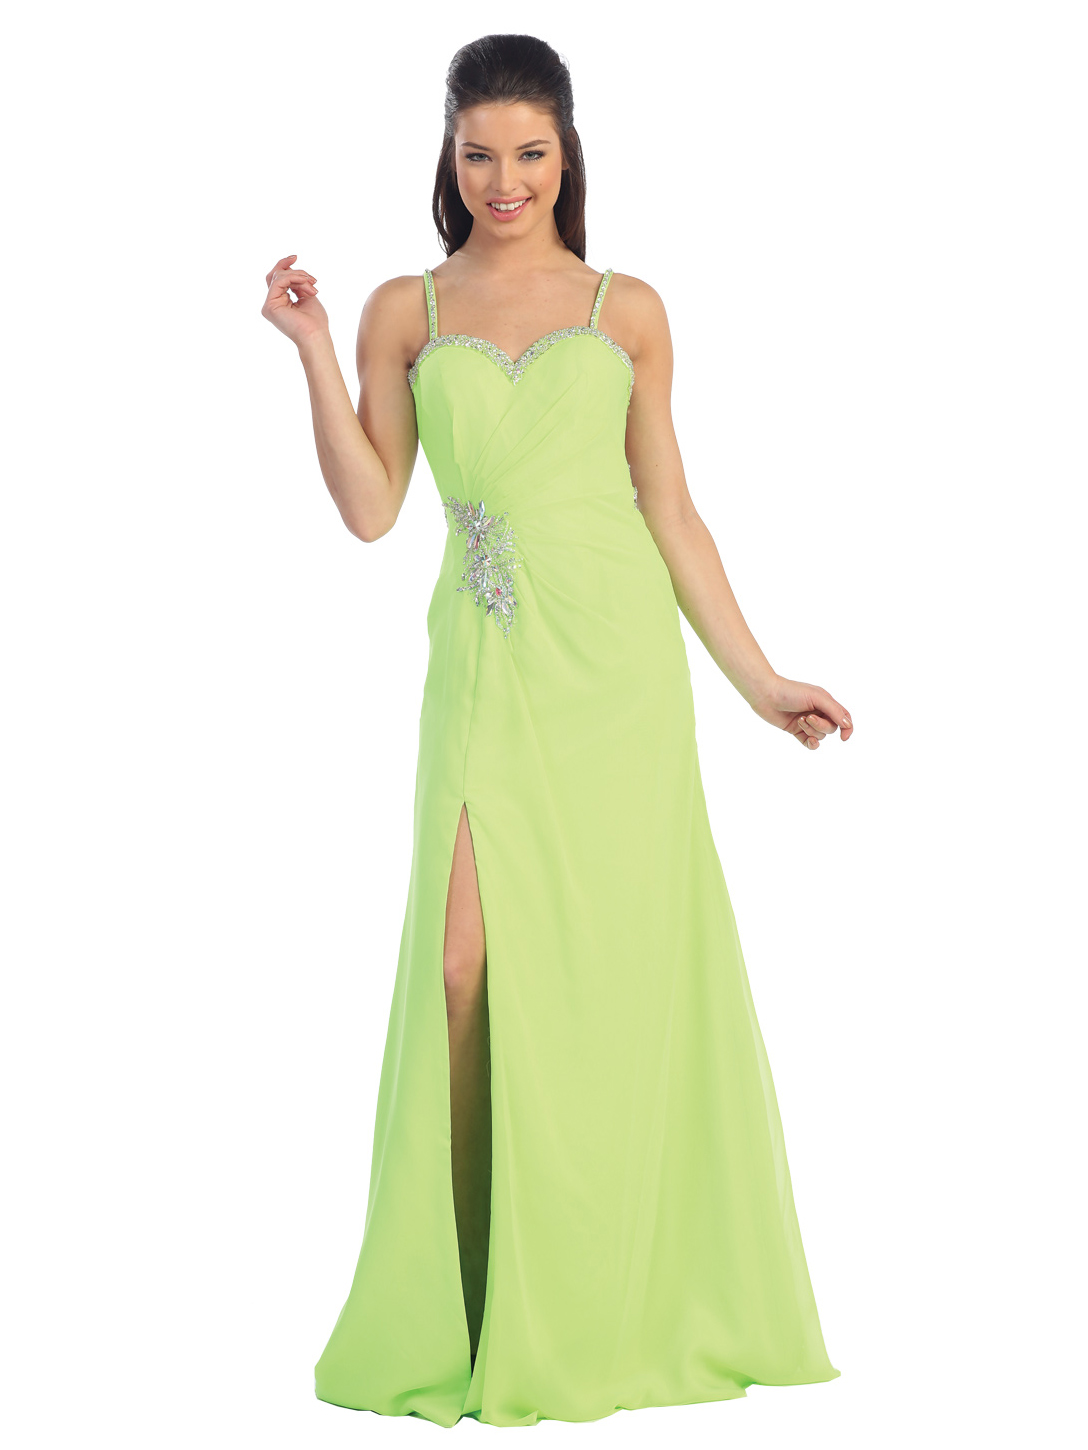 Pics s Details About Black Neon Green Prom Wedding